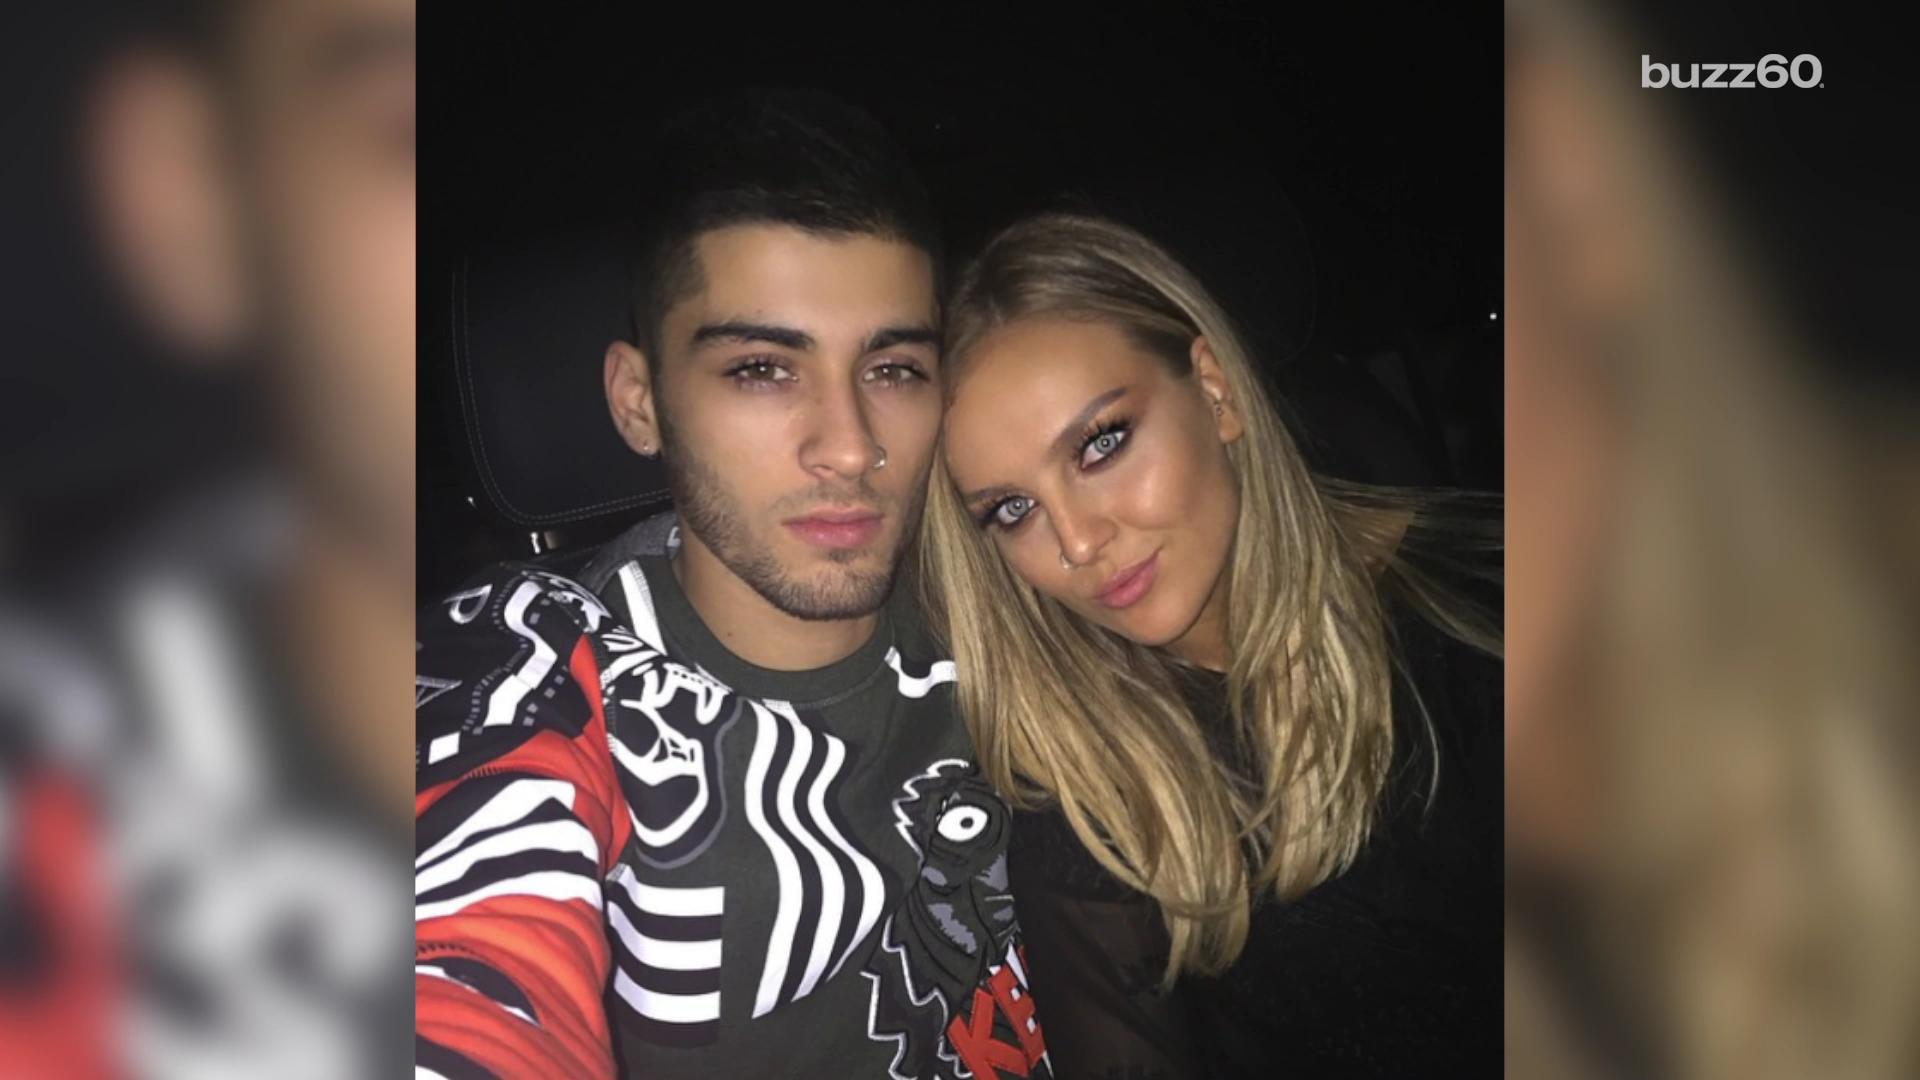 Zayn Malik calls off engagement and fans can't even handle it